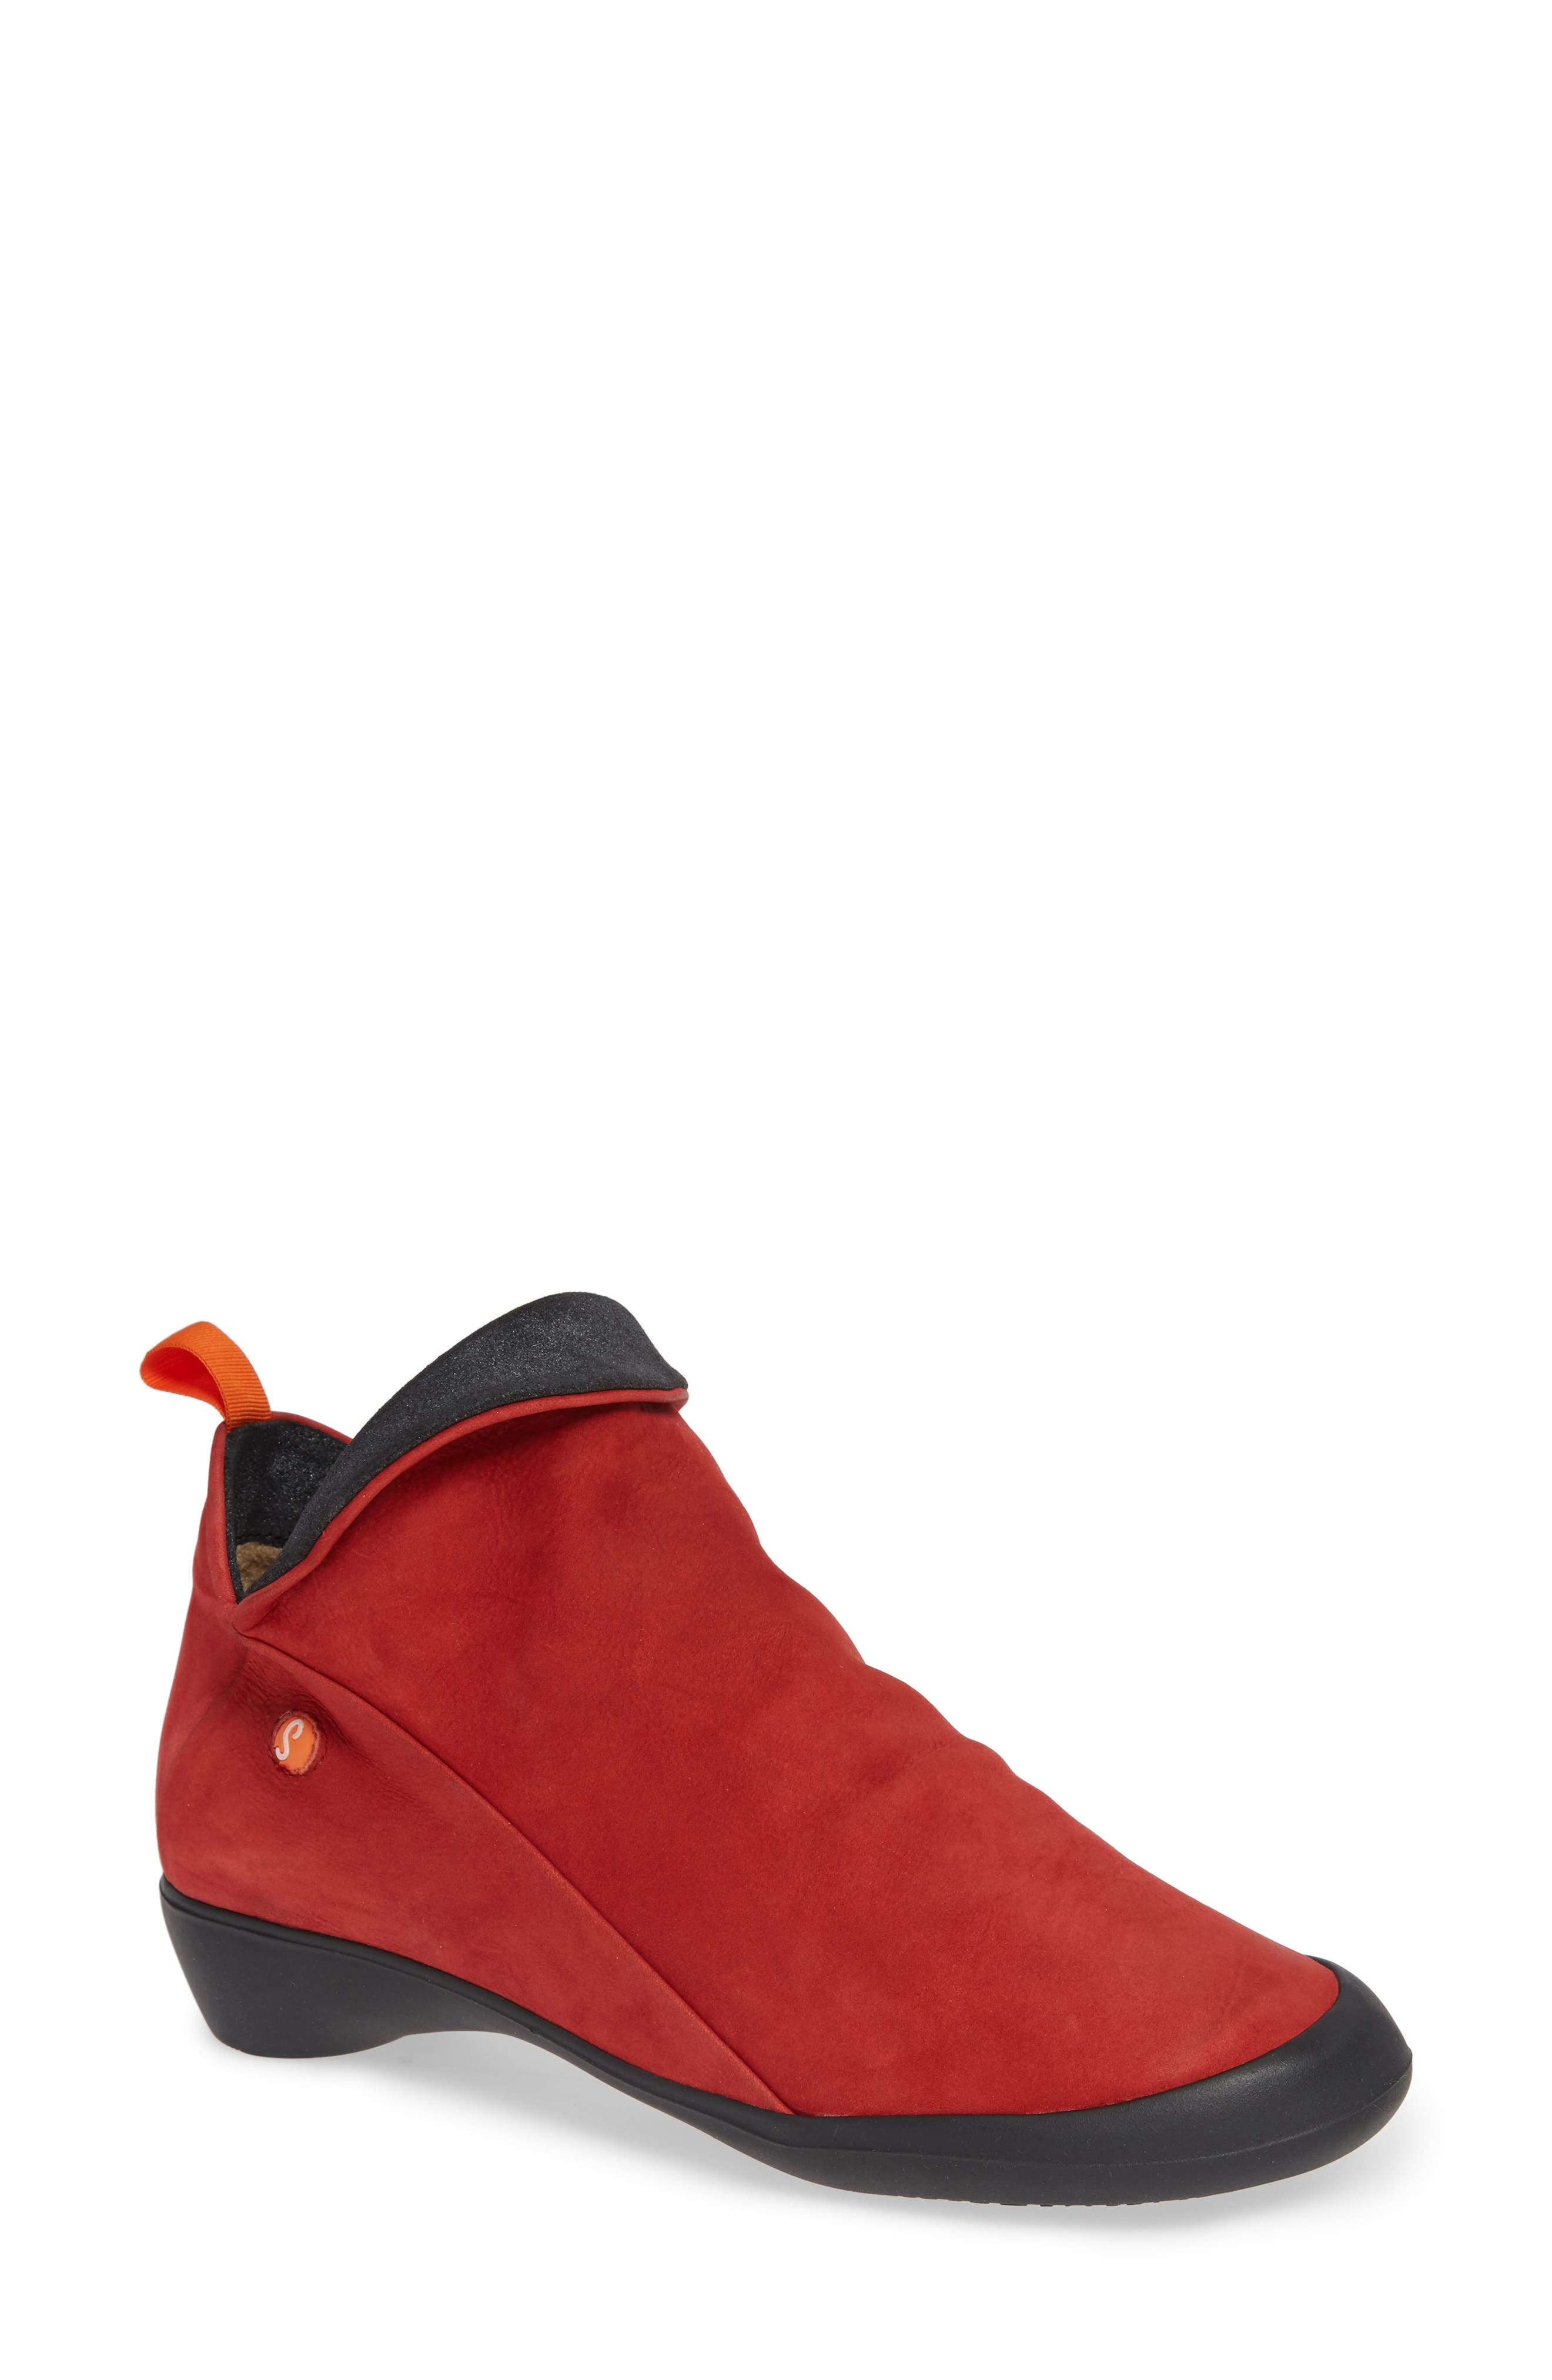 Softinos By Fly London Farah Bootie - Red